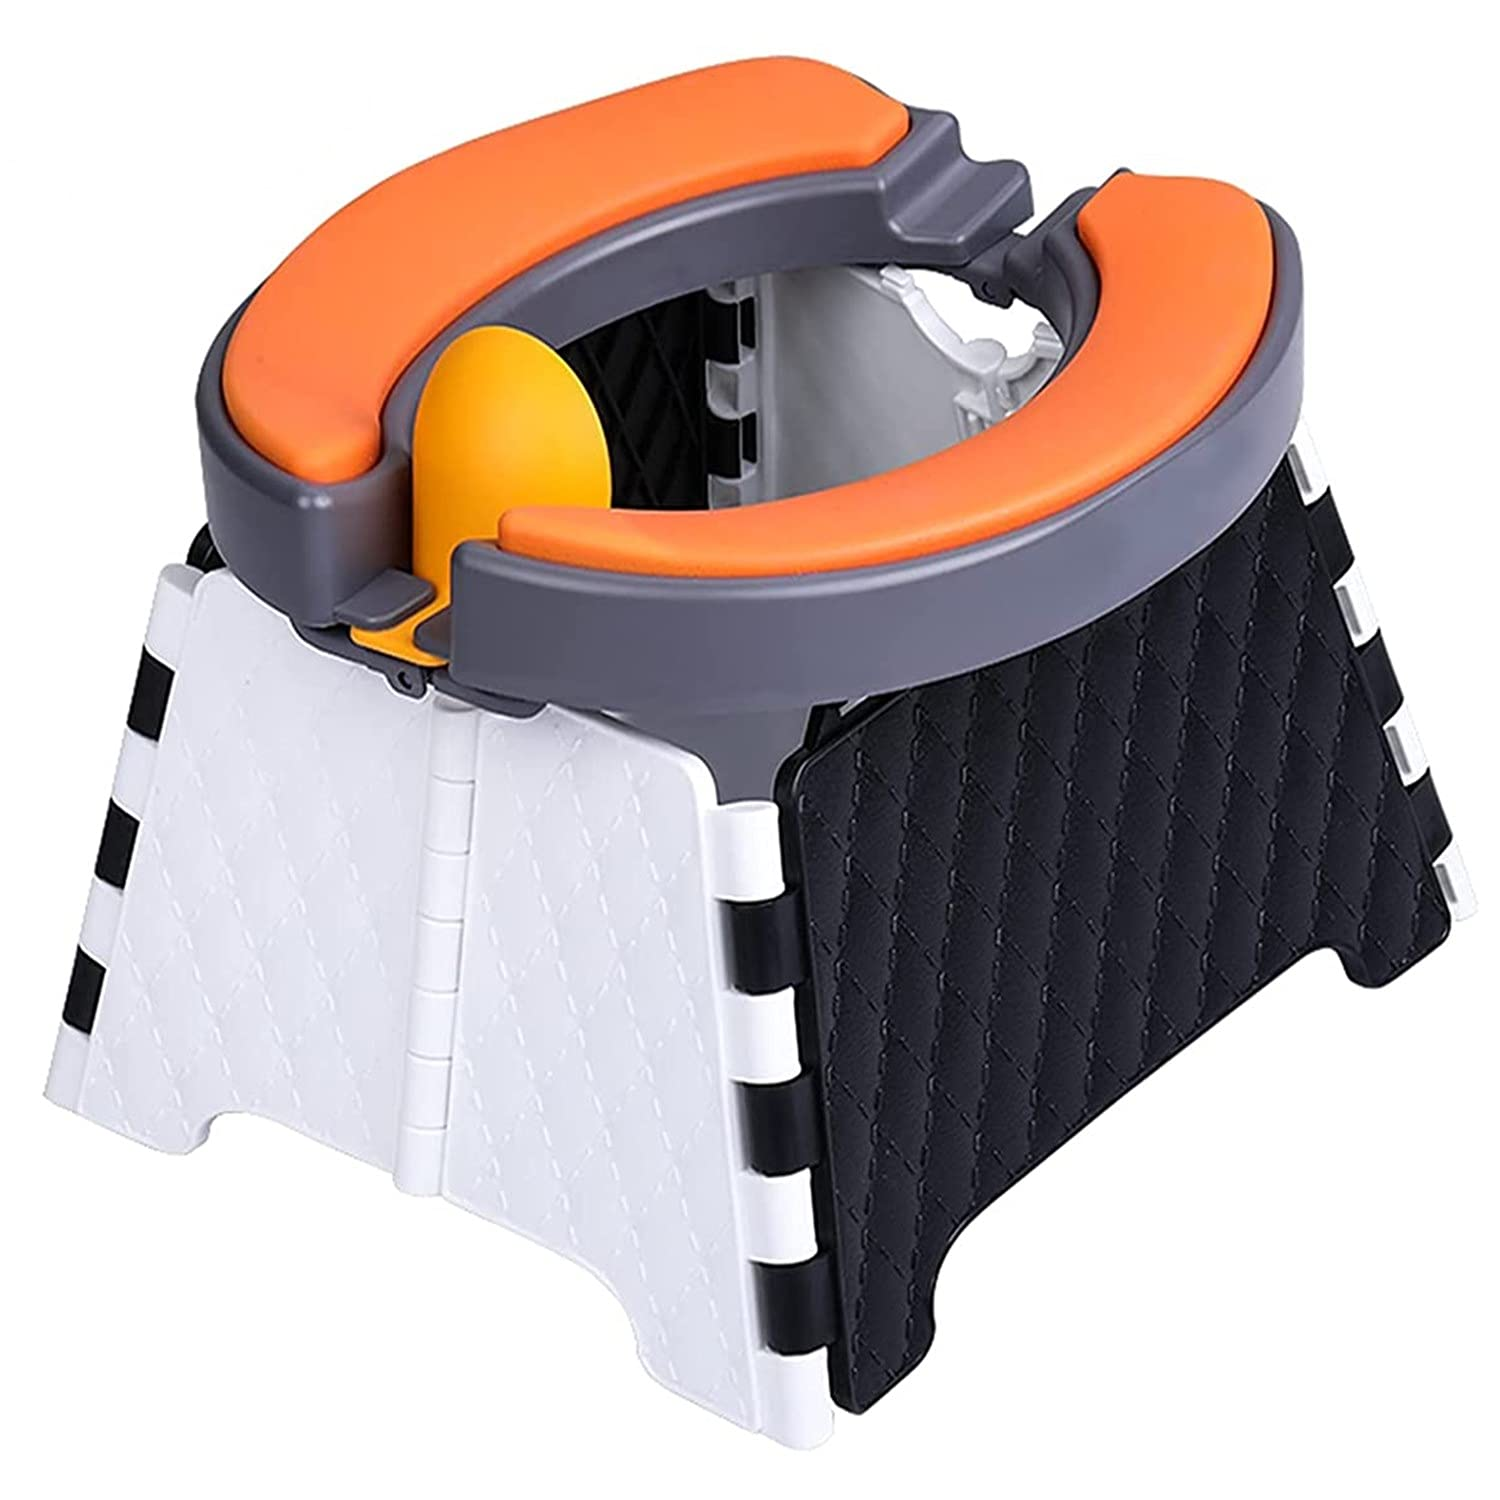 Portable Potty for Toddler Travel for Training Seat Kids Travel | Foldable Potty Travel Toilet Seat | Baby Potty Seat for Indoor and Outdoor